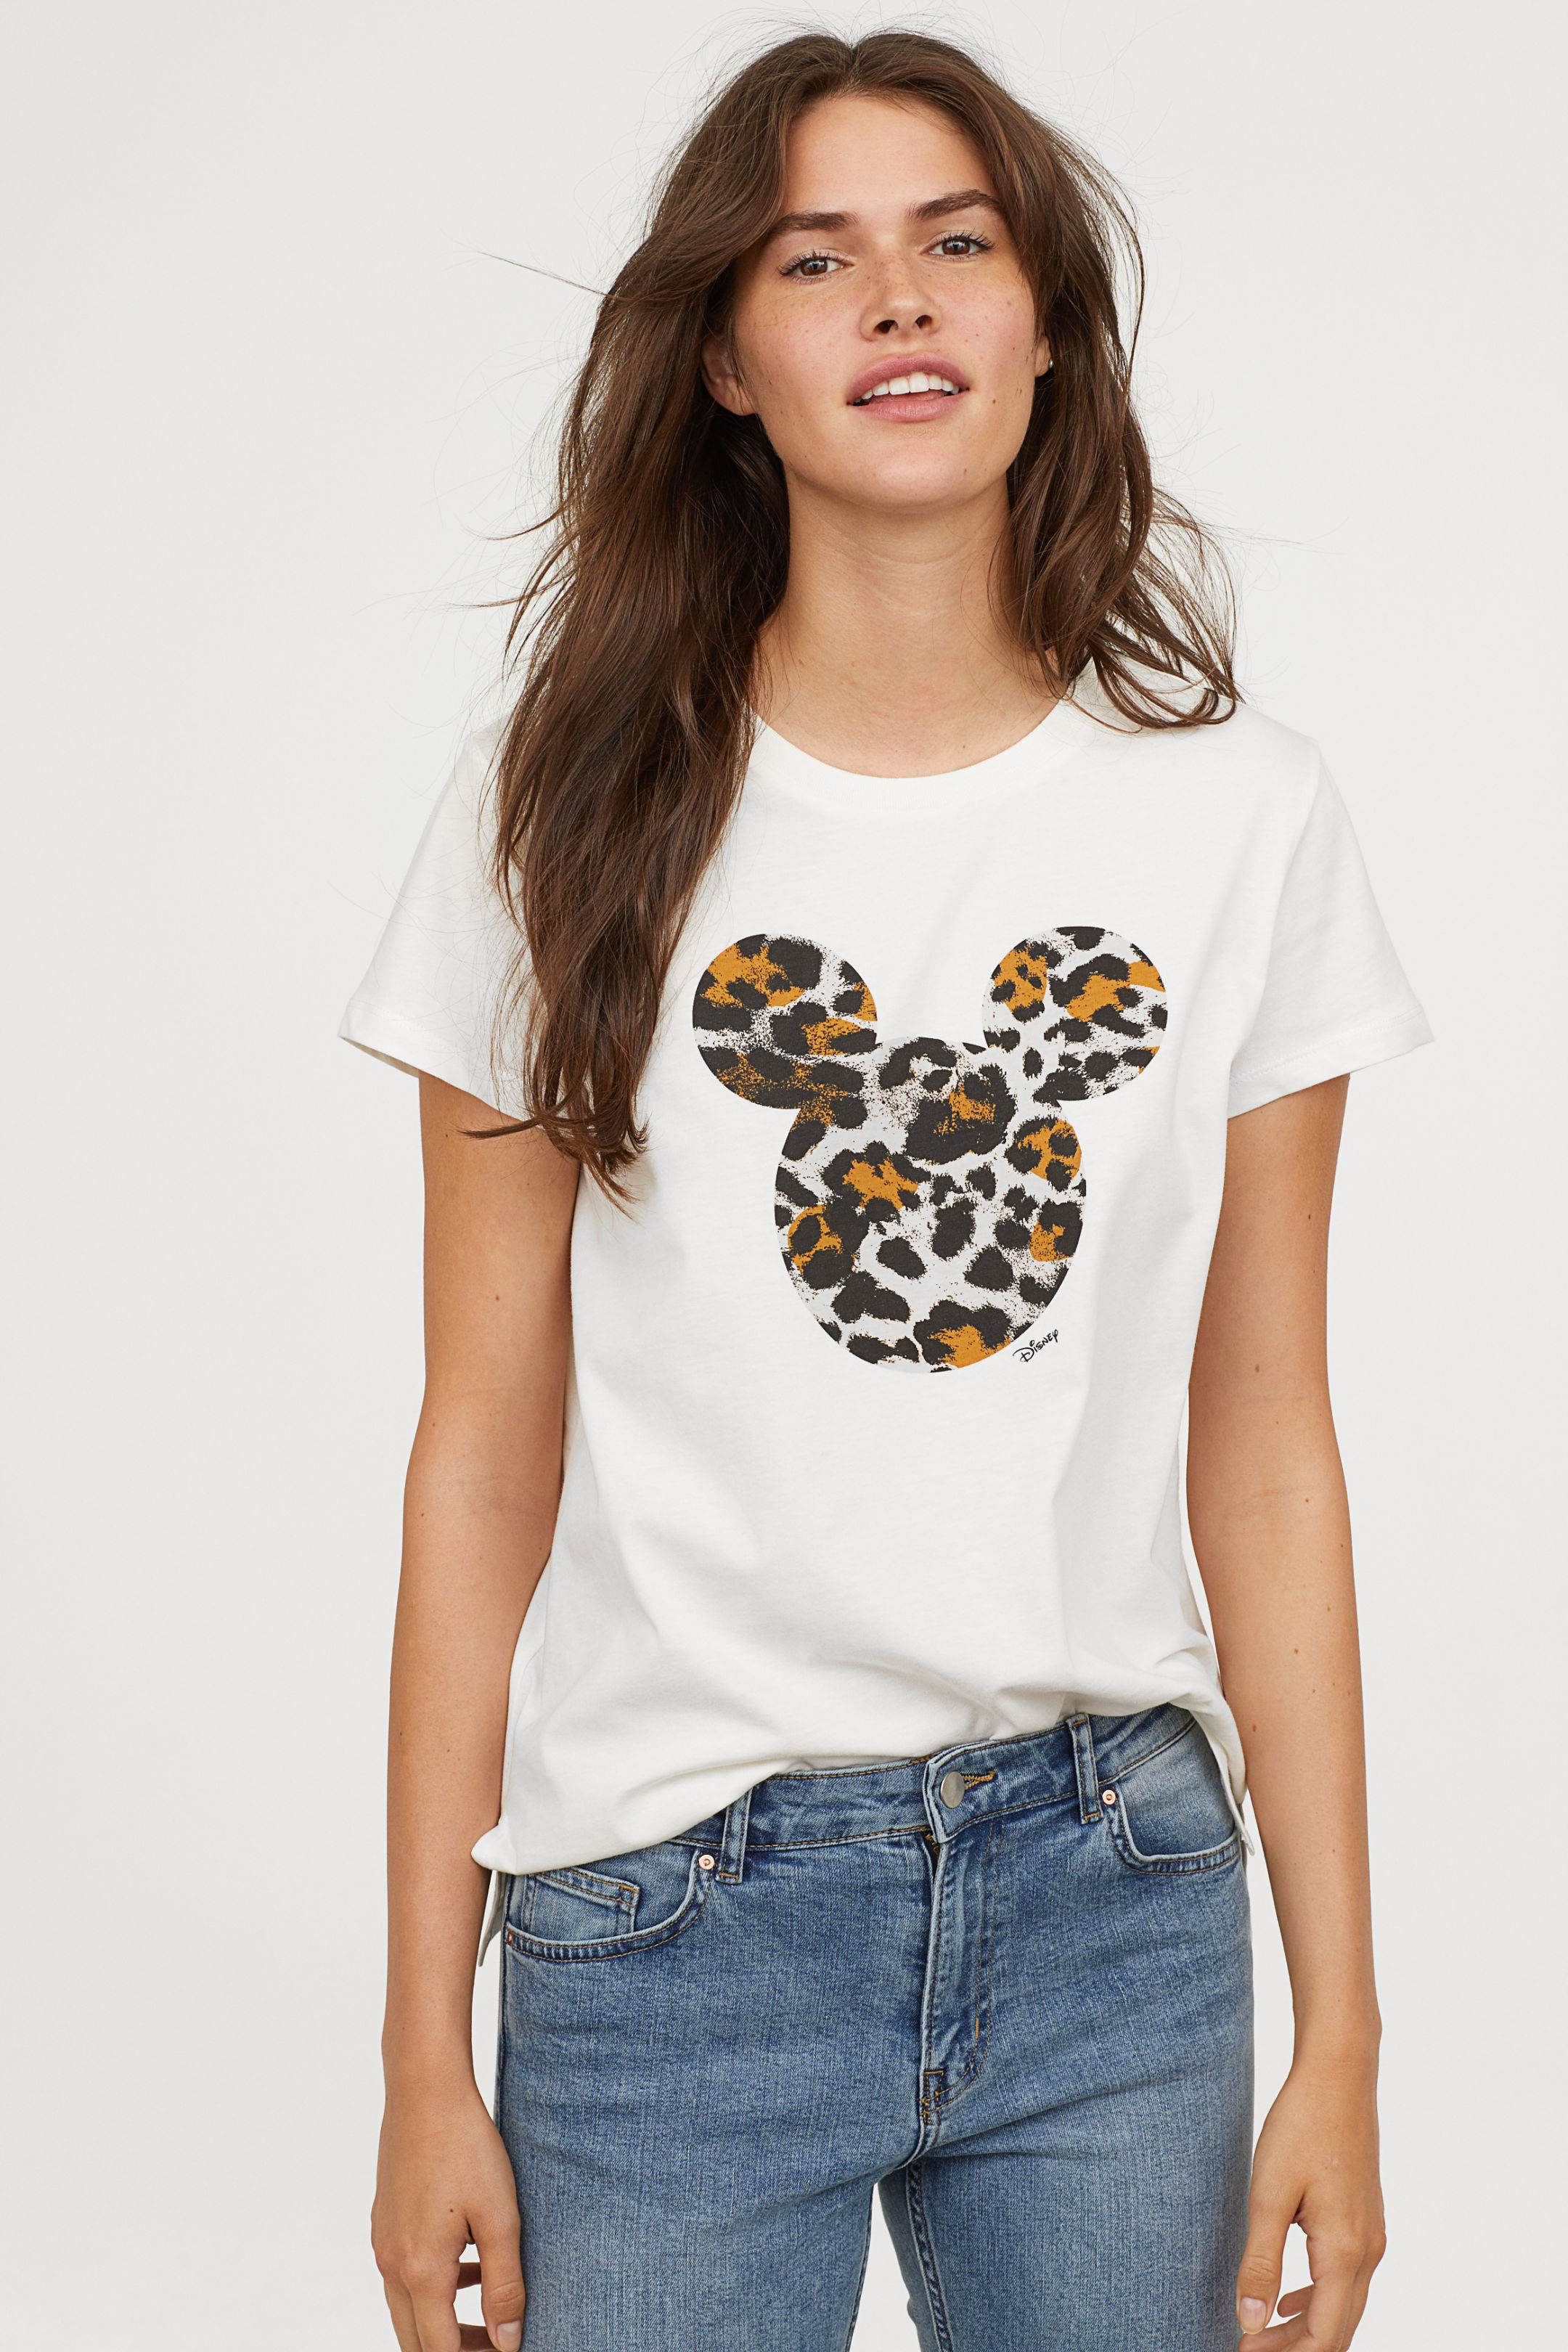 t-shirt trends 2018, h&m, animal print